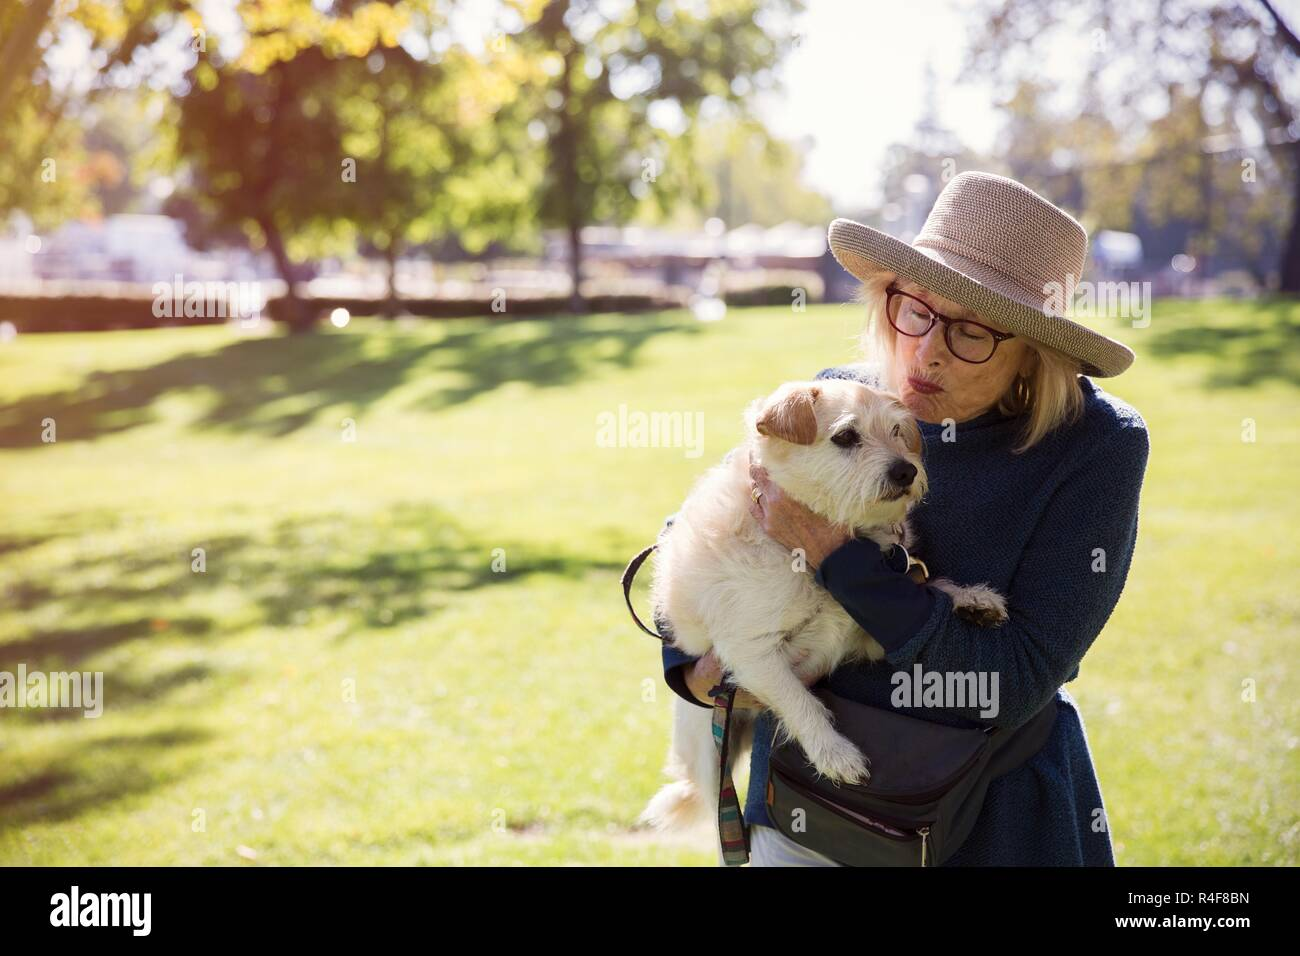 A Mature Women Kissing a Dog In Park Stock Photo